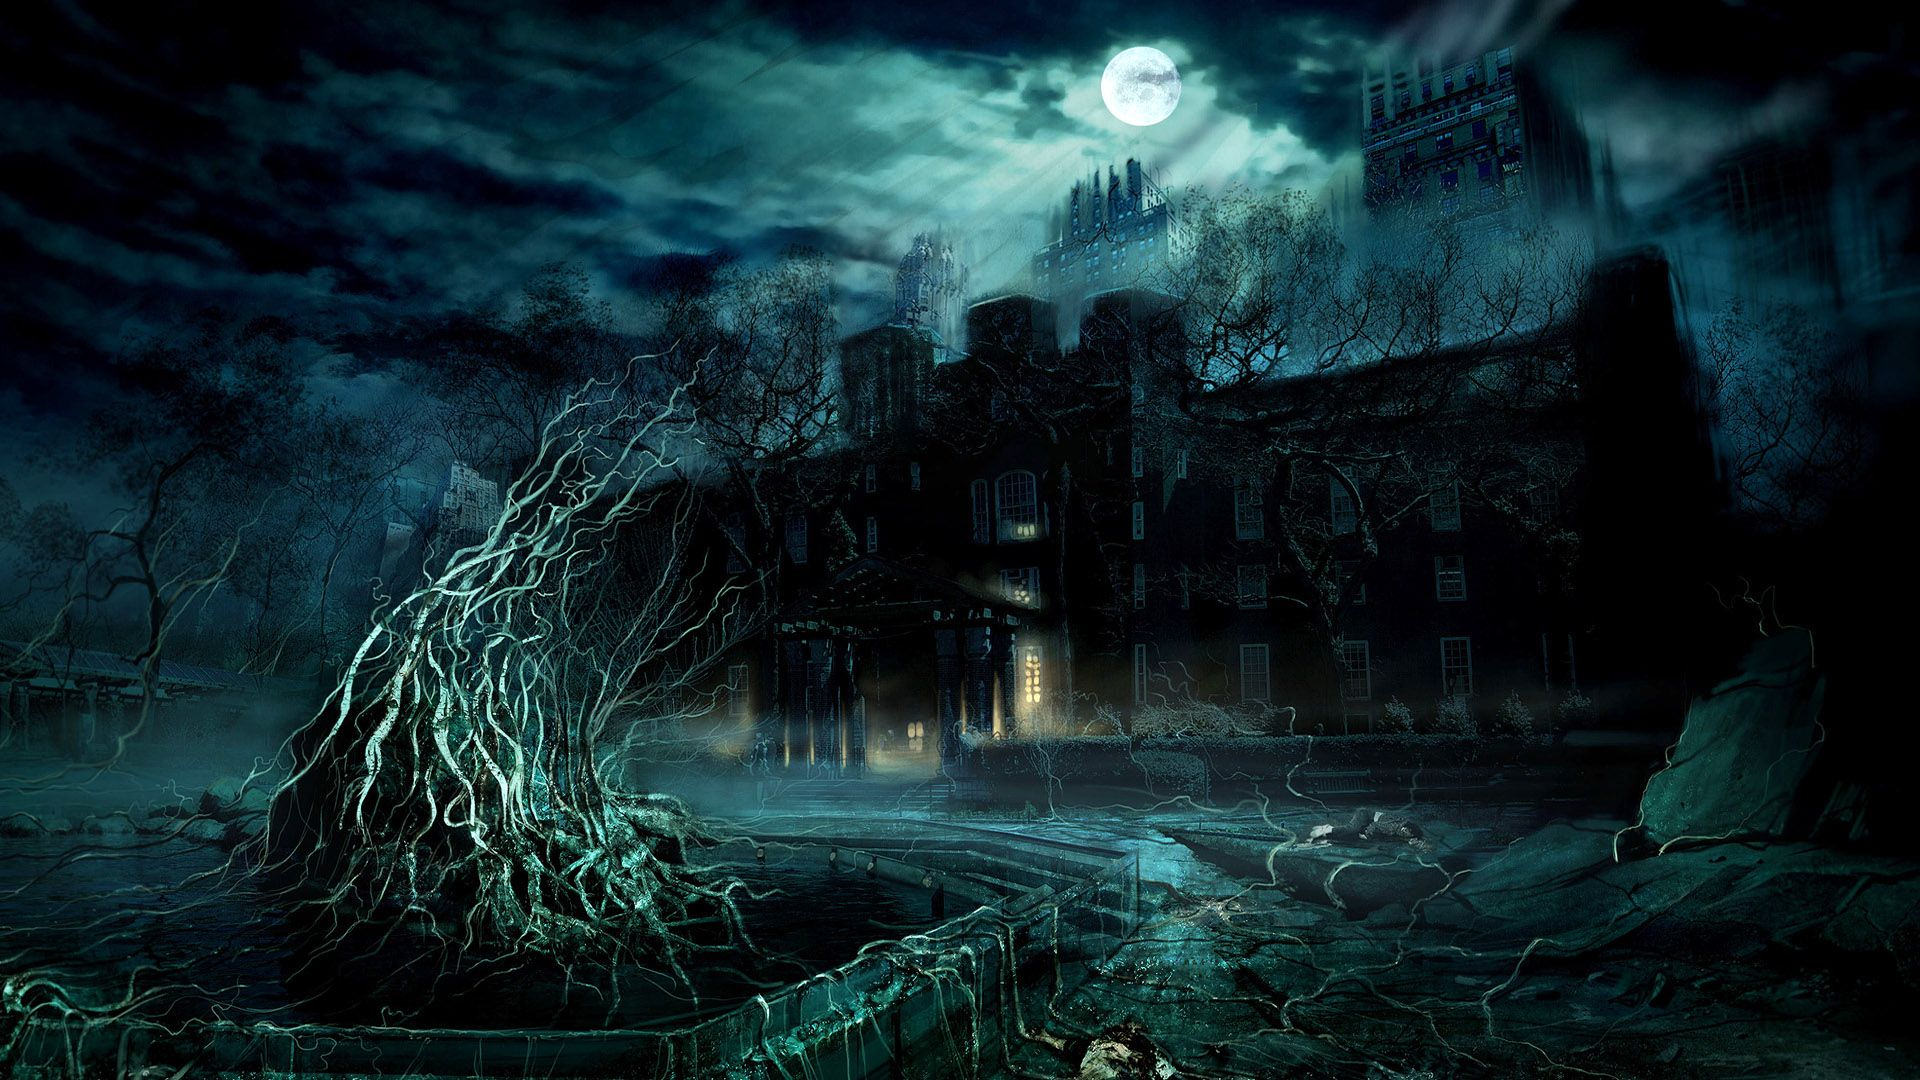 Scary Castle Image Wallpaper